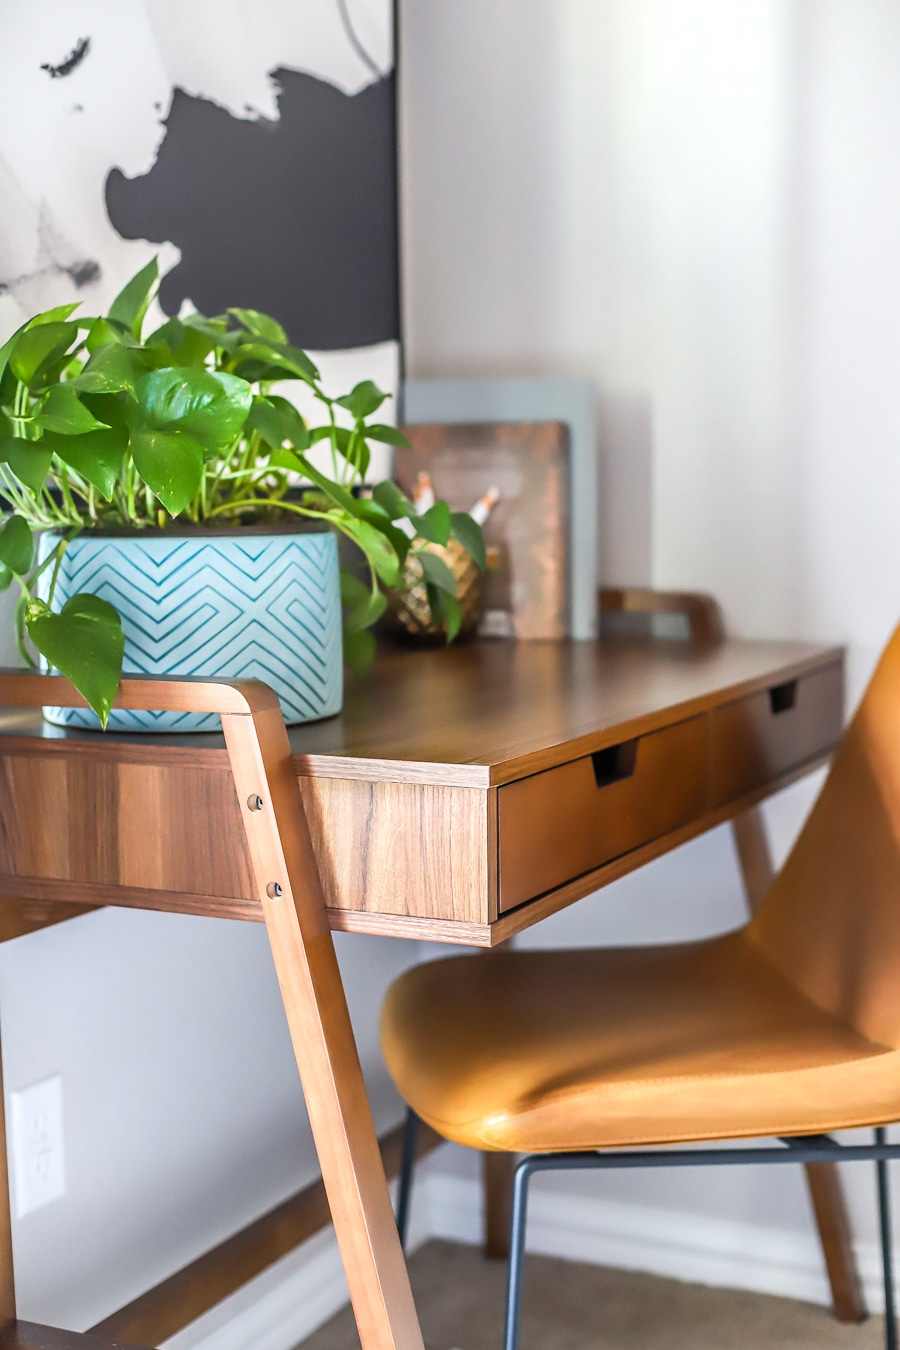 Modern mid-century home office desk and chair